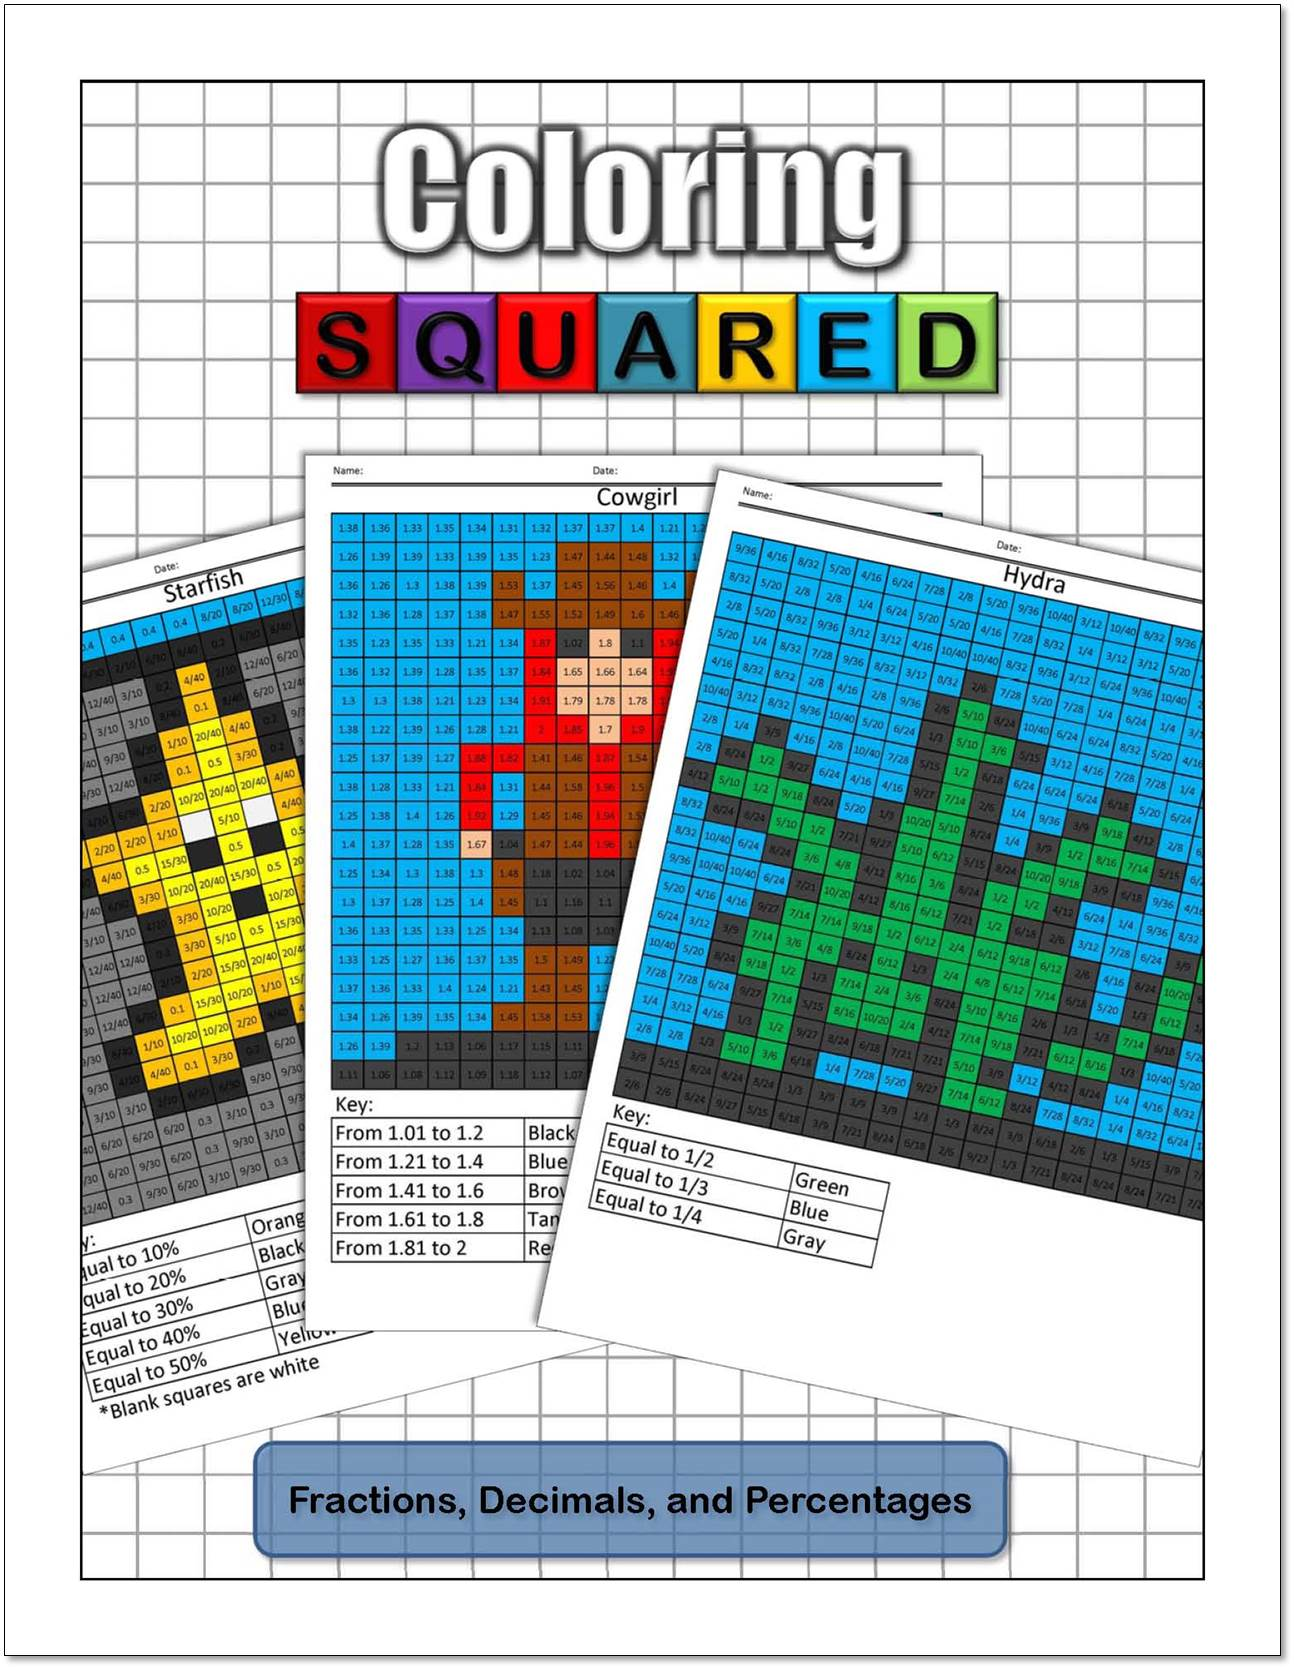 Coloring Squared Fractions Decimals And Percentages